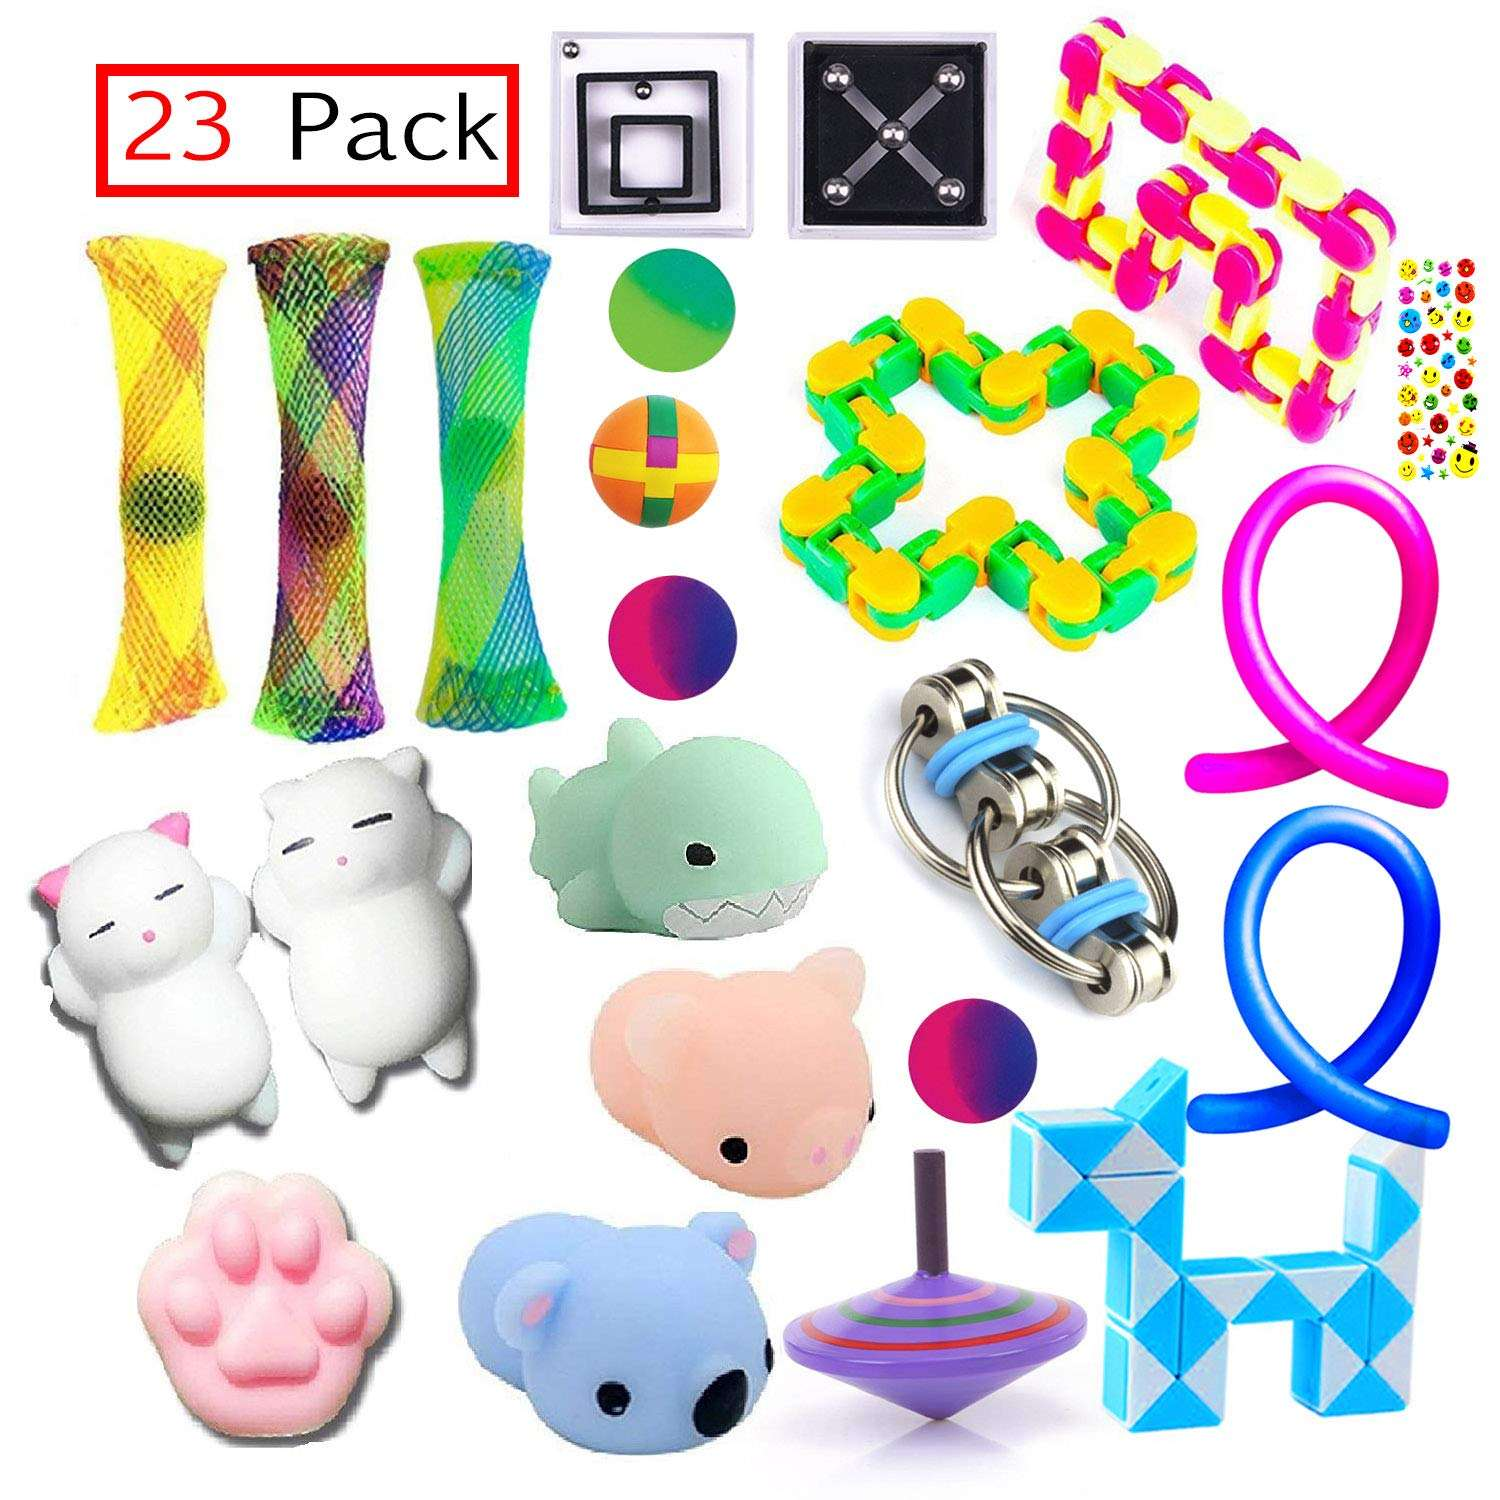 23 pack Bundle Sensory Fidget Toys Set-Bike Chain,Marble Fidget Toys,Squeeze a Bean Soybeans